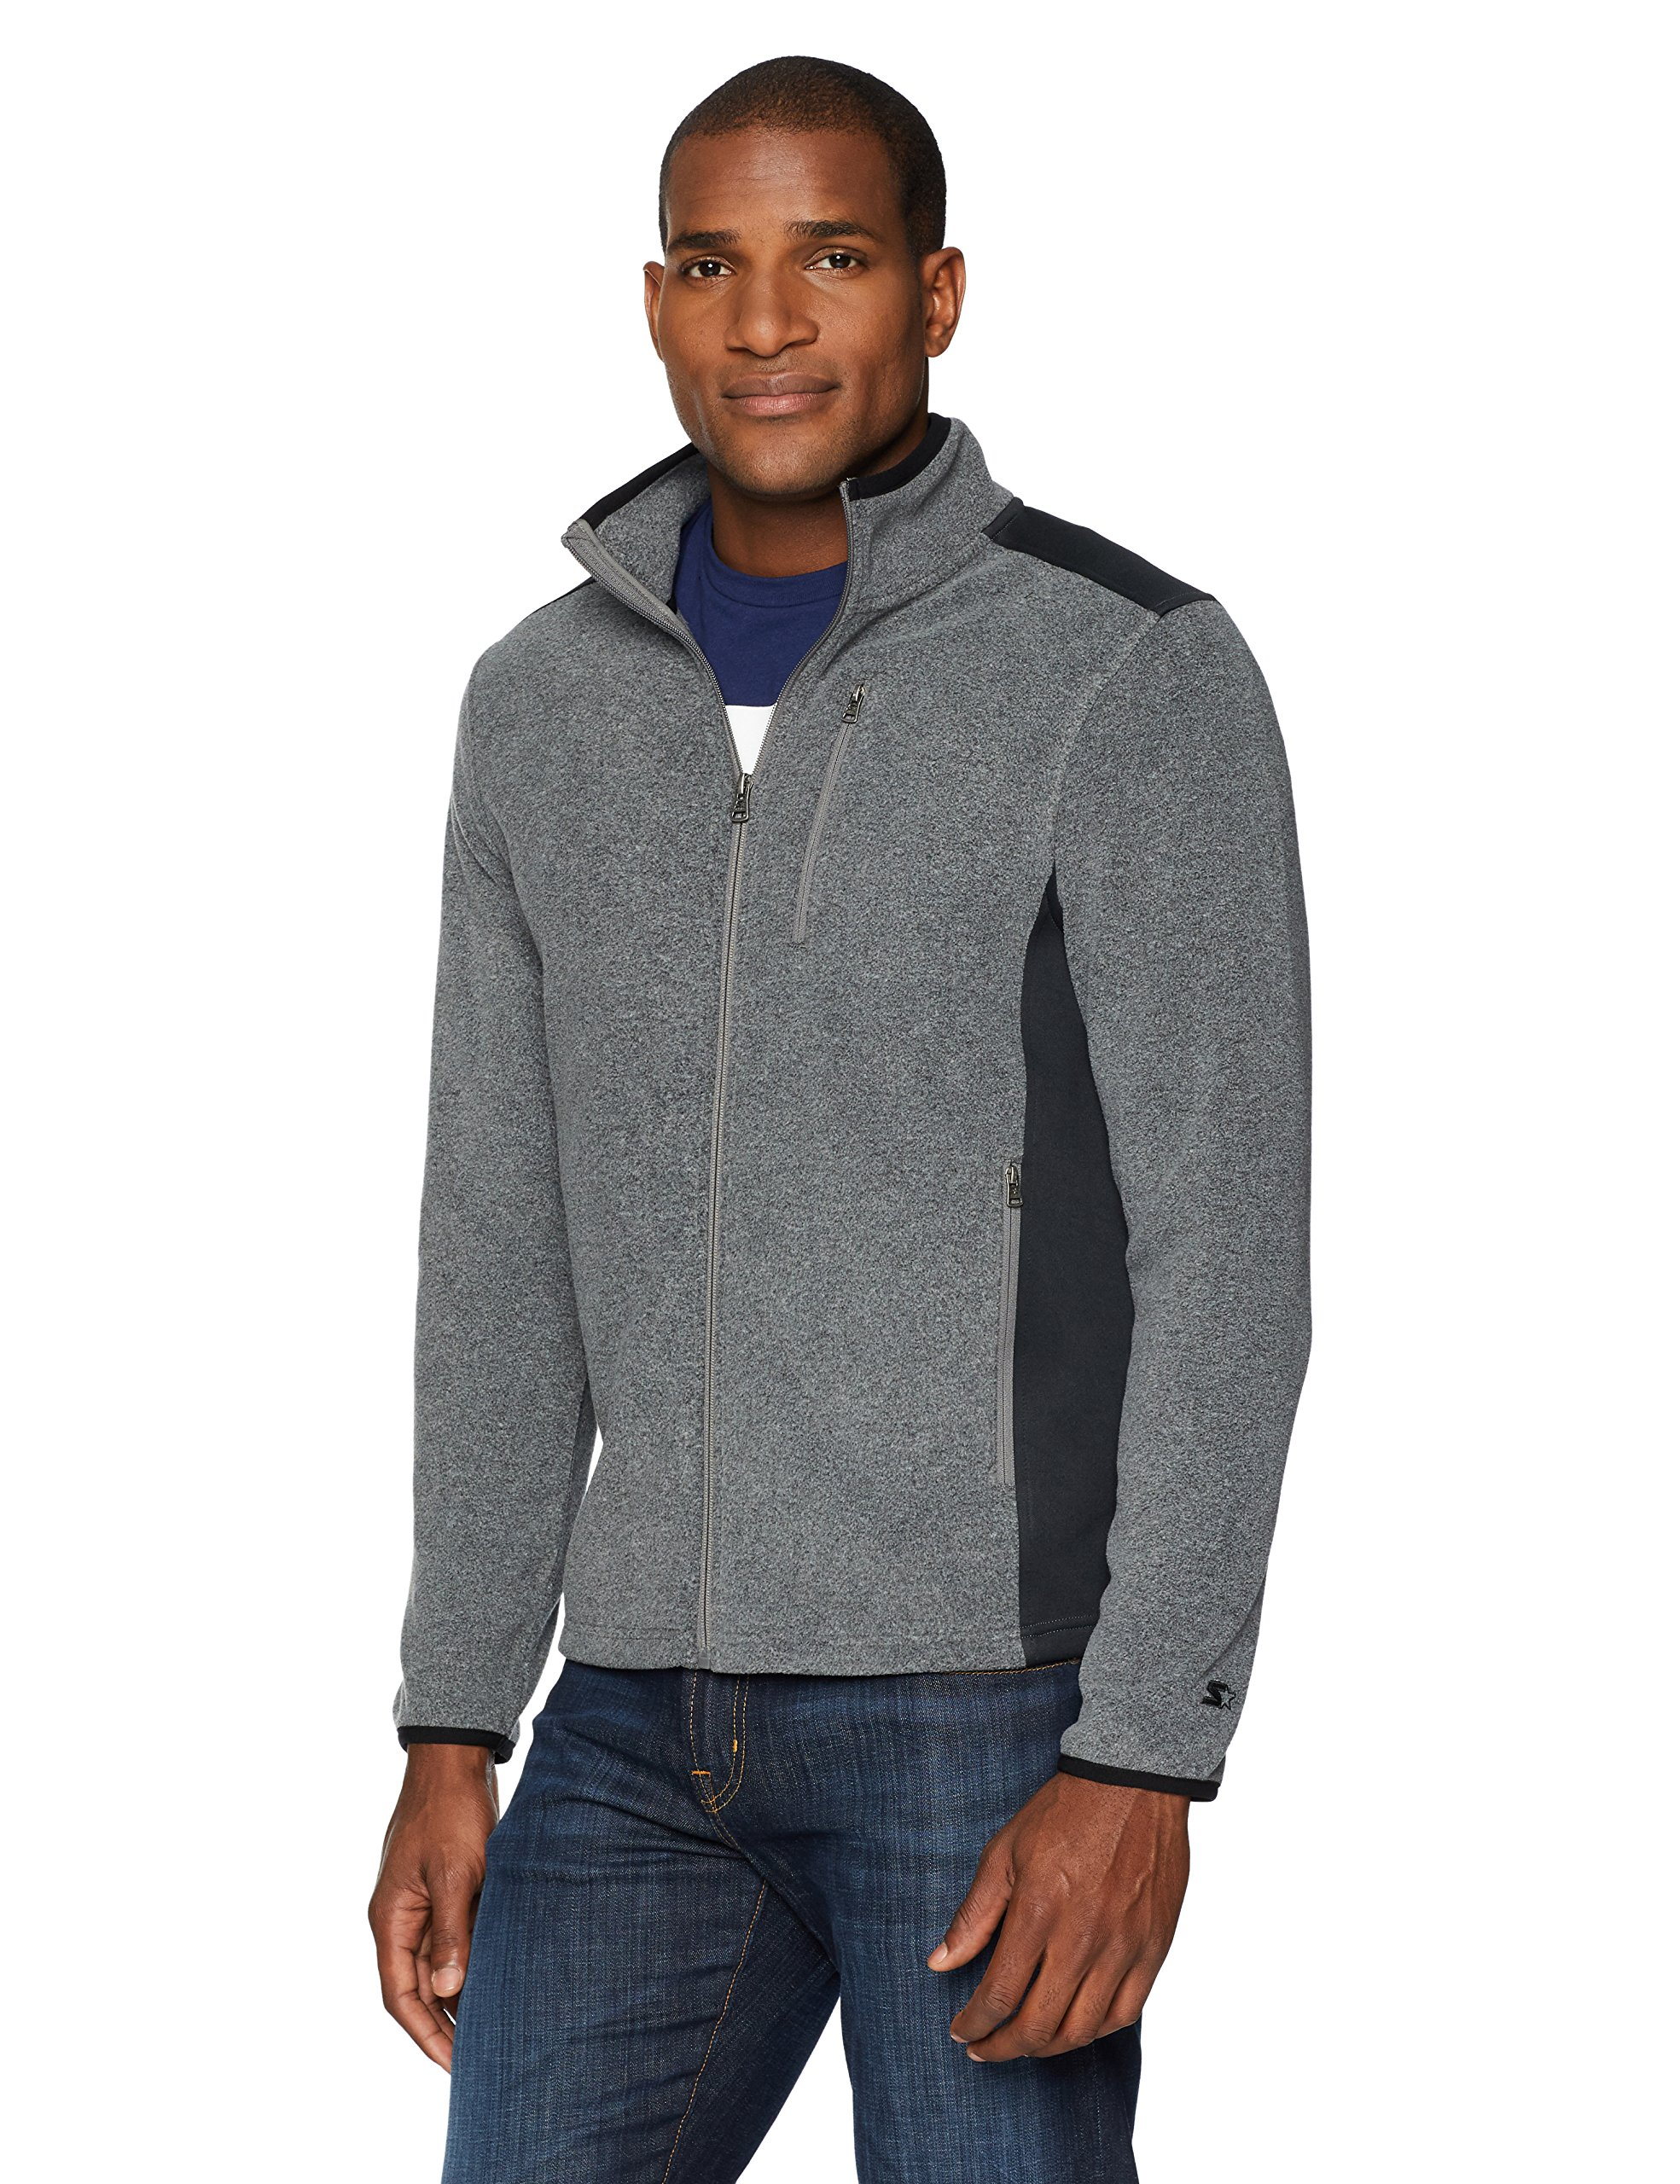 Starter Men's Polar Fleece Jacket, Prime Exclusive, Vapor Grey Heather, Extra Large by Starter